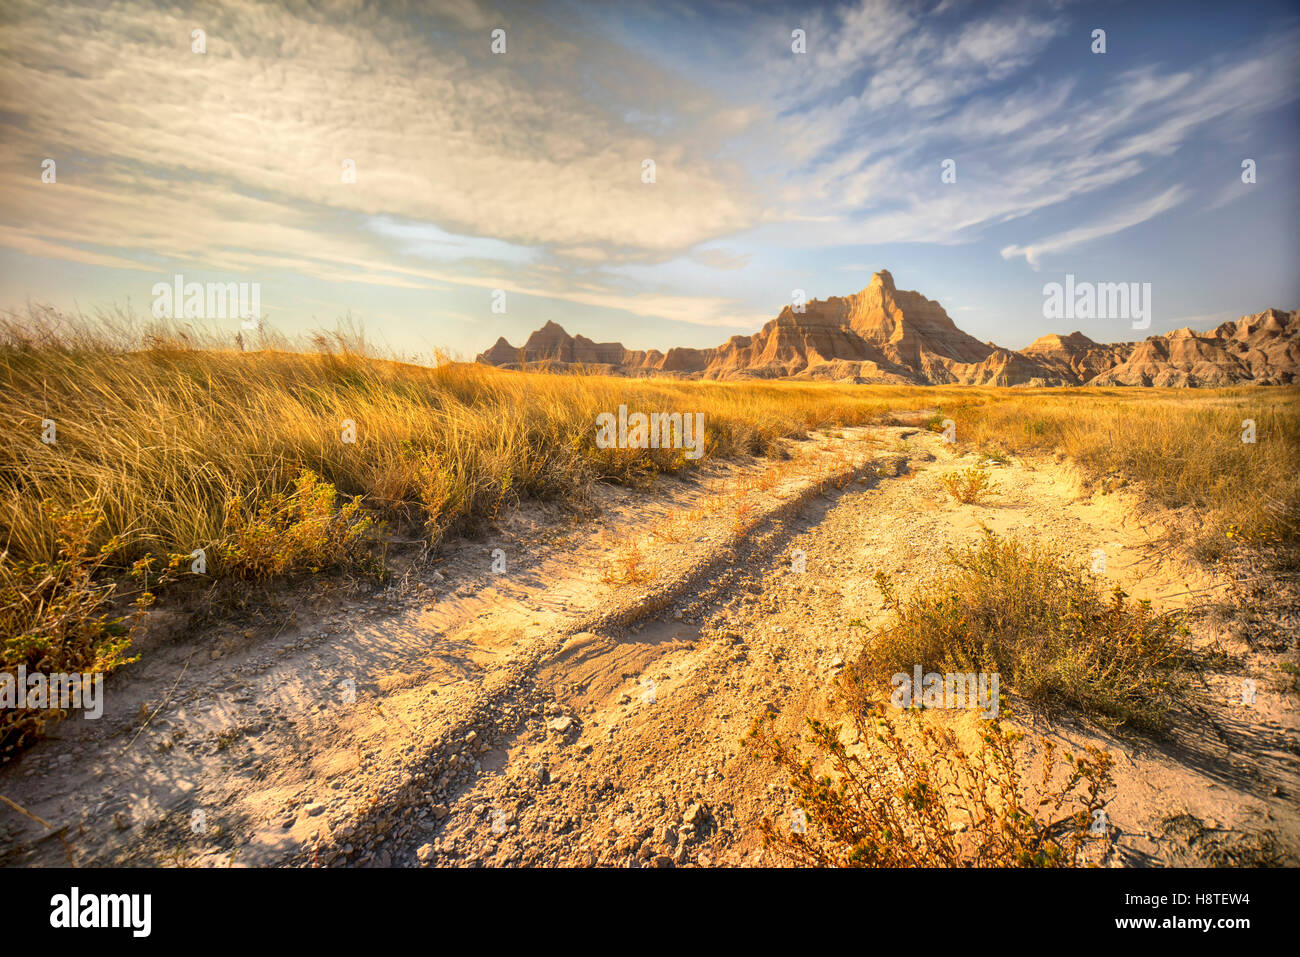 Badlands National Park, South Dakota, USA, Desert landscape, Stock Photo